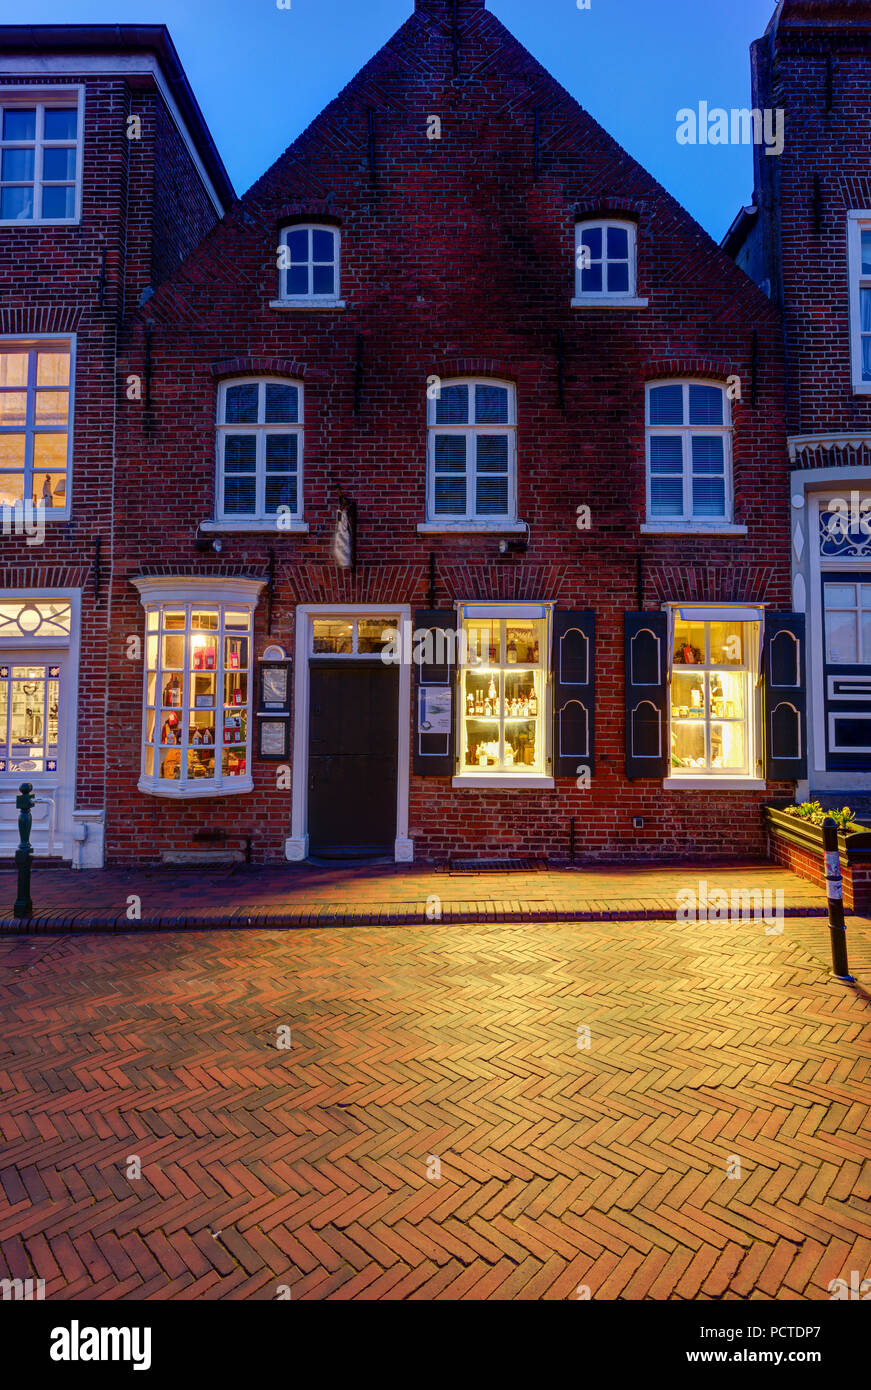 Blue hour, Greetsiel, center, Facade, East Frisia, Lower Saxony, Germany, - Stock Image